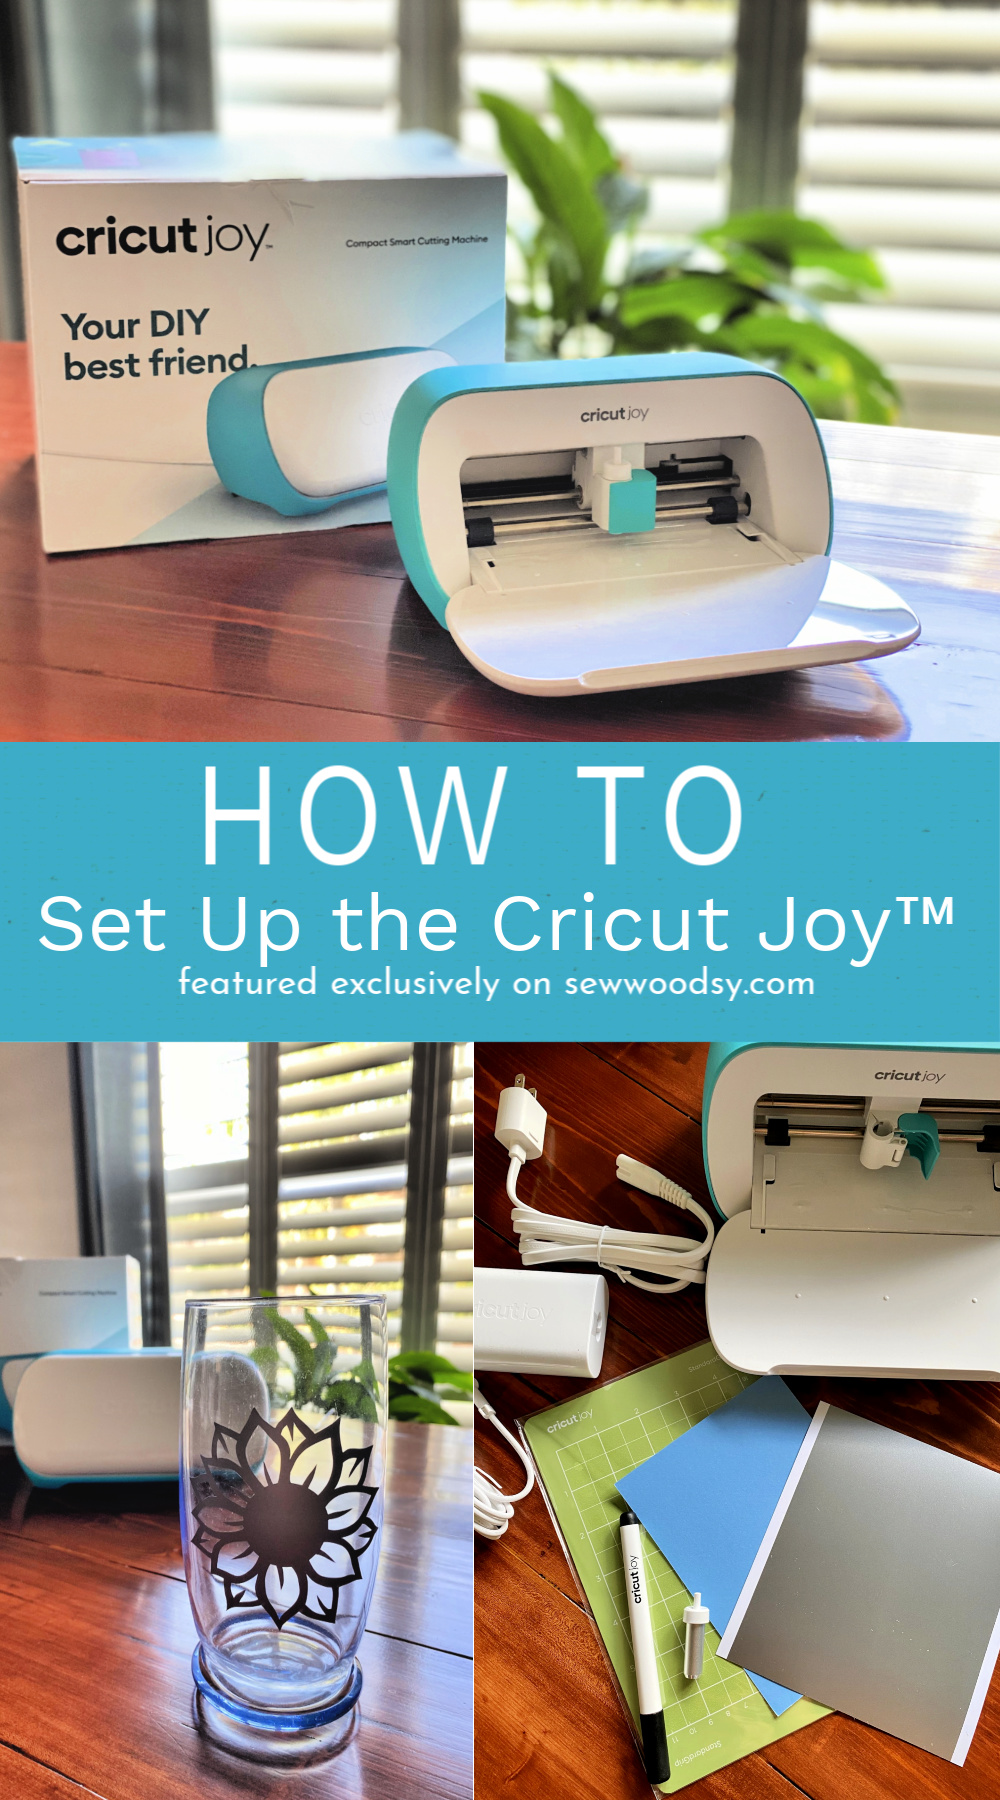 How To Set Up The Cricut Joy collage